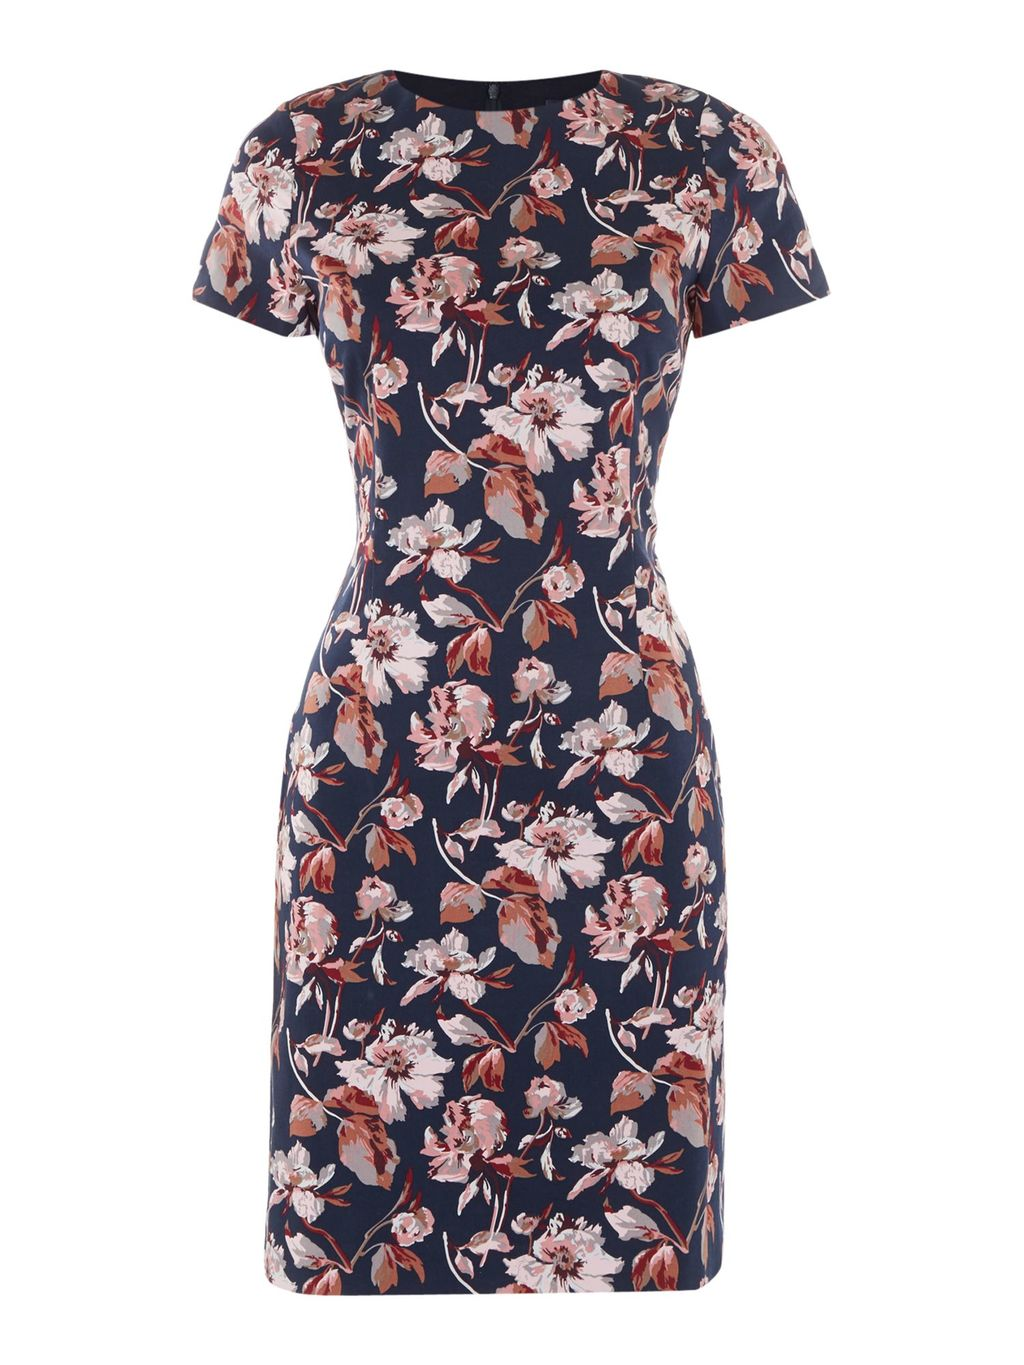 Aquarella Blossom Dress, Blue - style: shift; secondary colour: blush; predominant colour: navy; occasions: evening; length: just above the knee; fit: body skimming; fibres: cotton - stretch; neckline: crew; sleeve length: short sleeve; sleeve style: standard; pattern type: fabric; pattern size: big & busy; pattern: florals; texture group: jersey - stretchy/drapey; multicoloured: multicoloured; season: a/w 2016